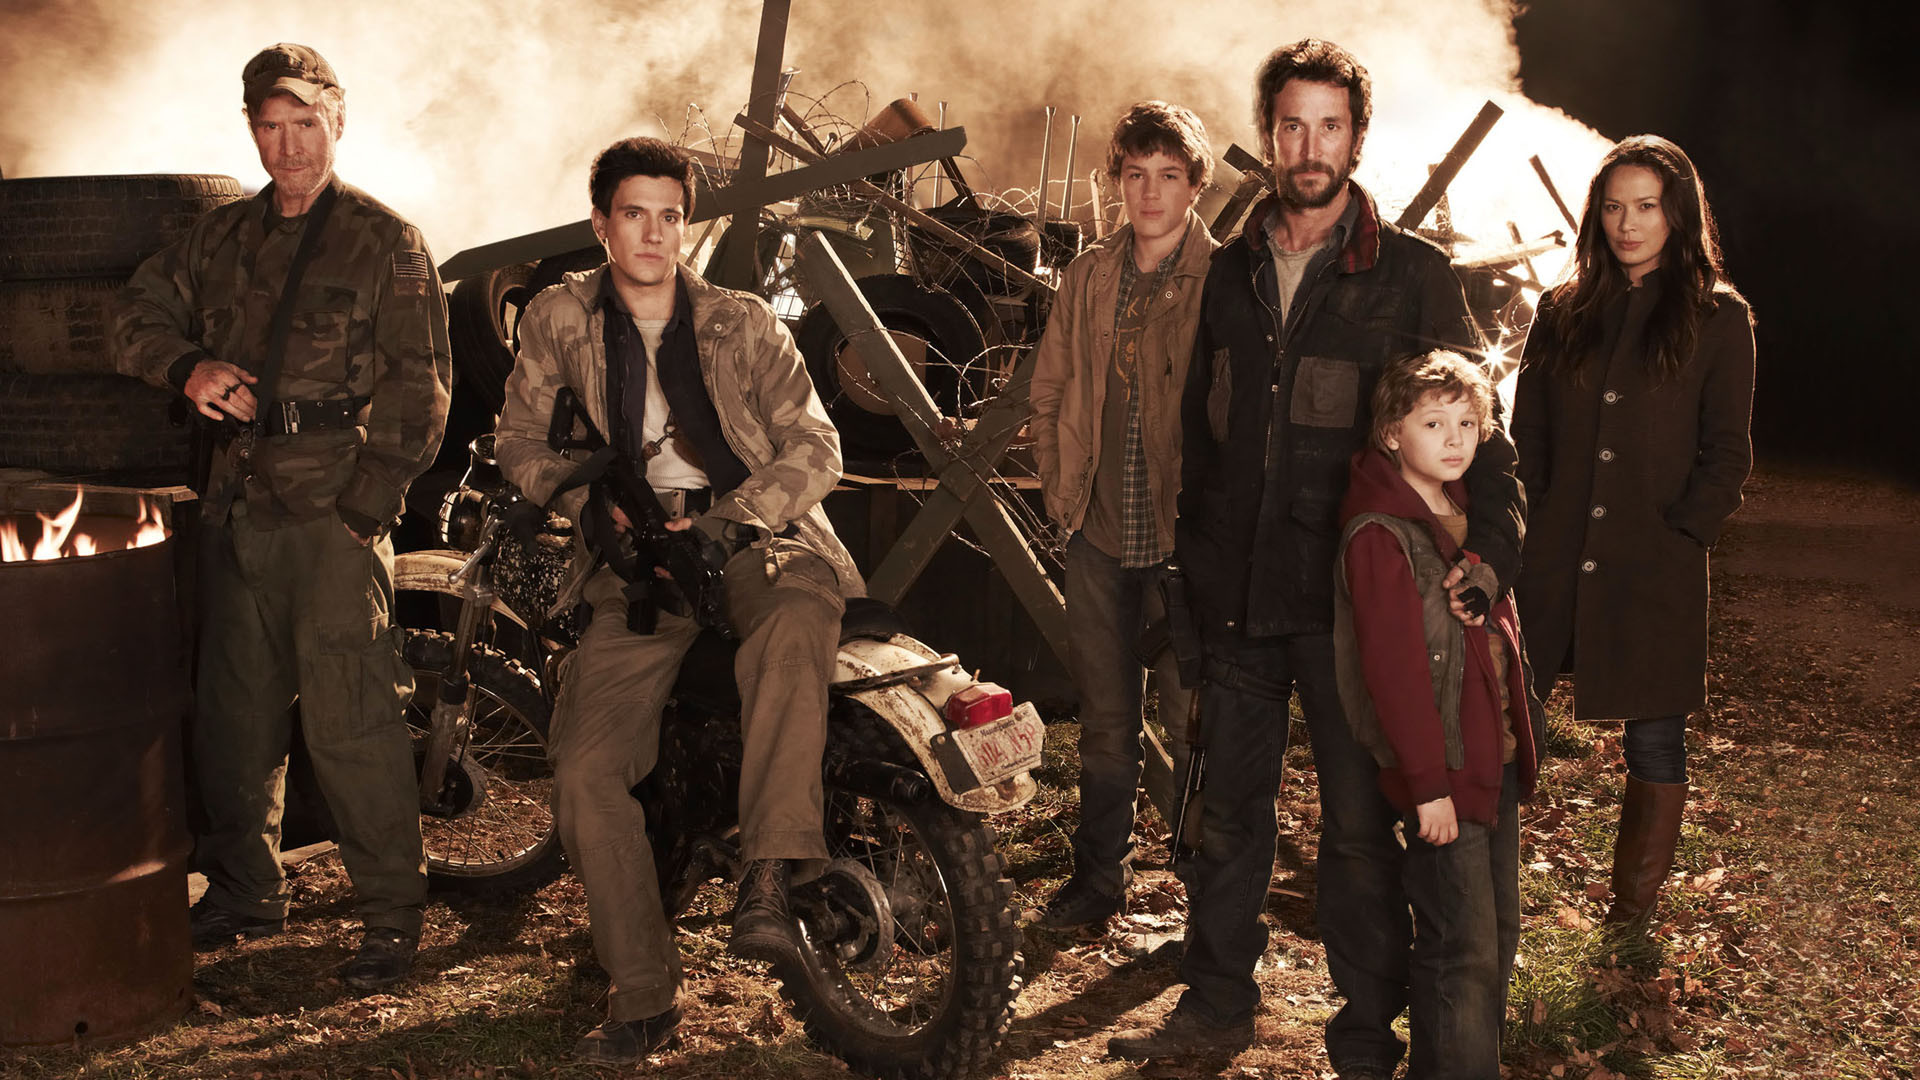 falling skies episode guide show summary and schedule track your rh pogdesign co uk Falling Skies Aliens The Sky Is Falling